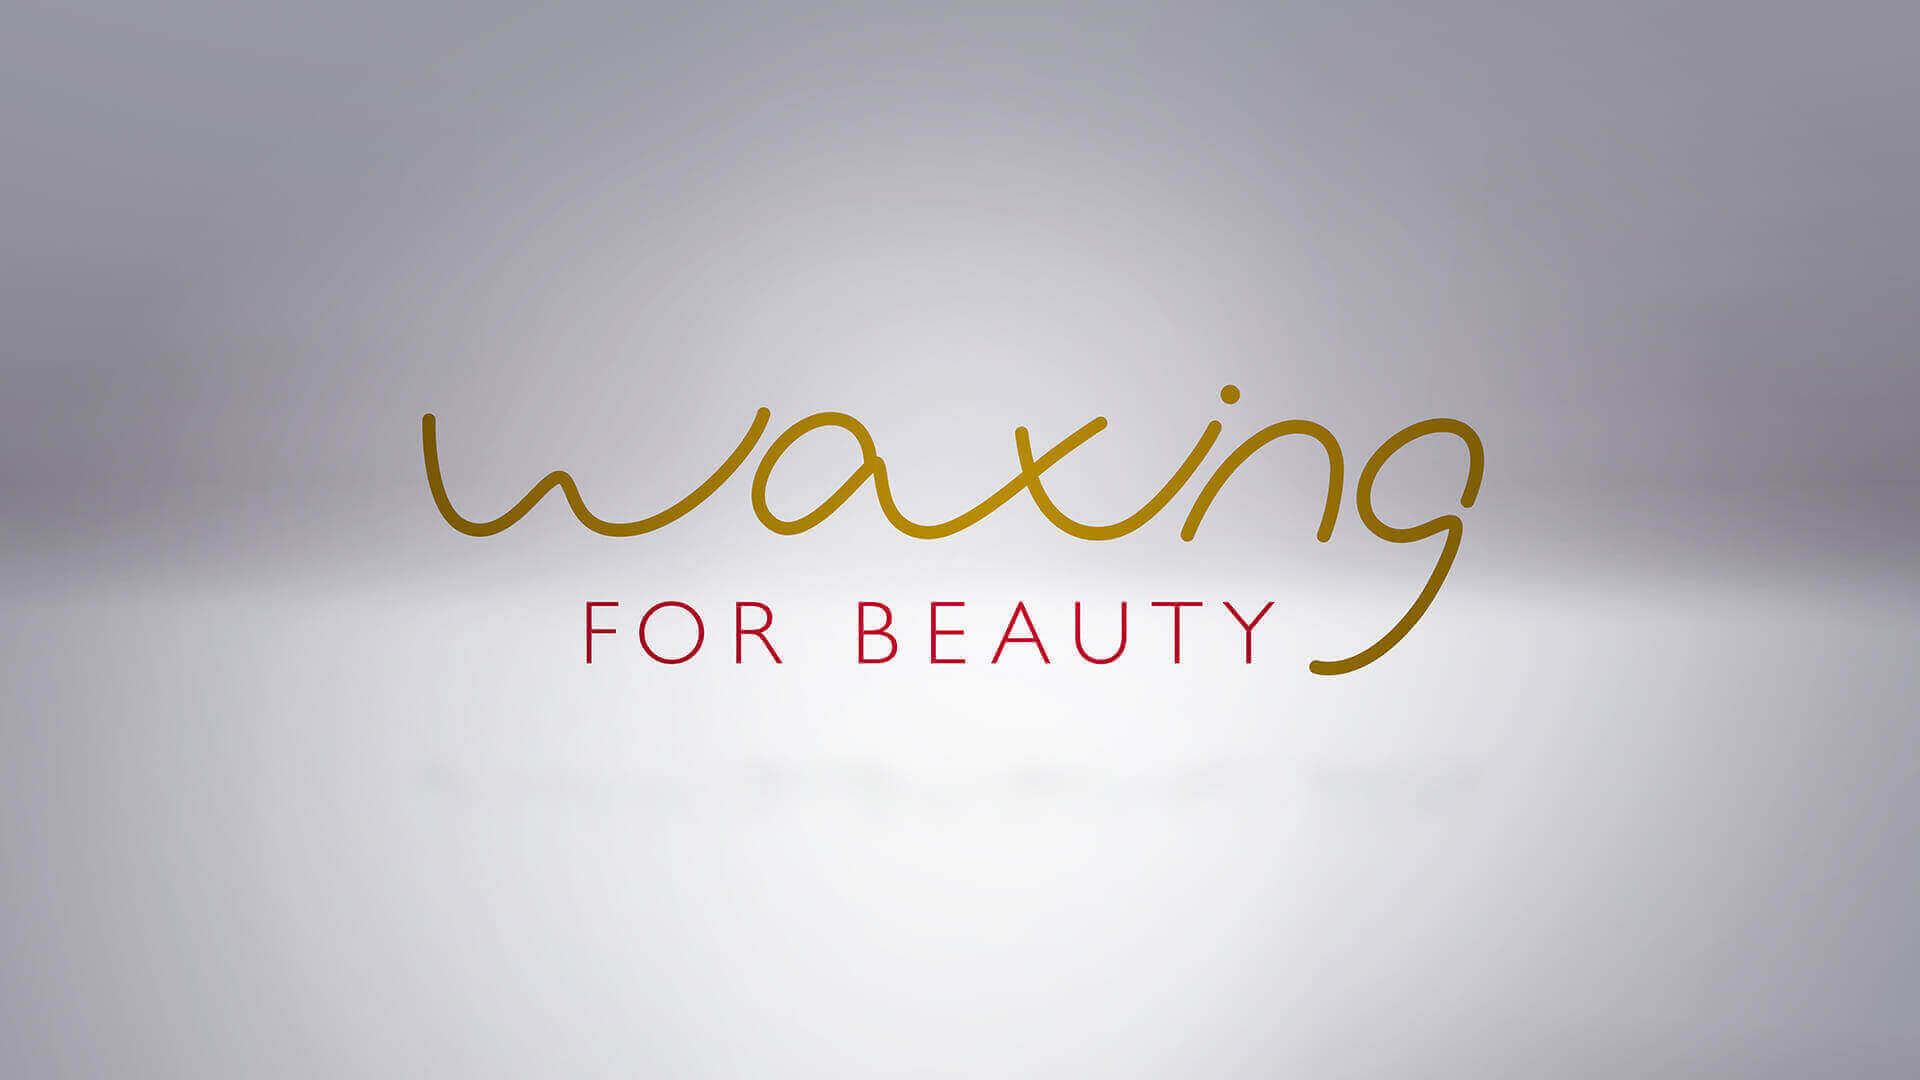 WAXING FOR BEAUTY CHARITY FOUNDATION